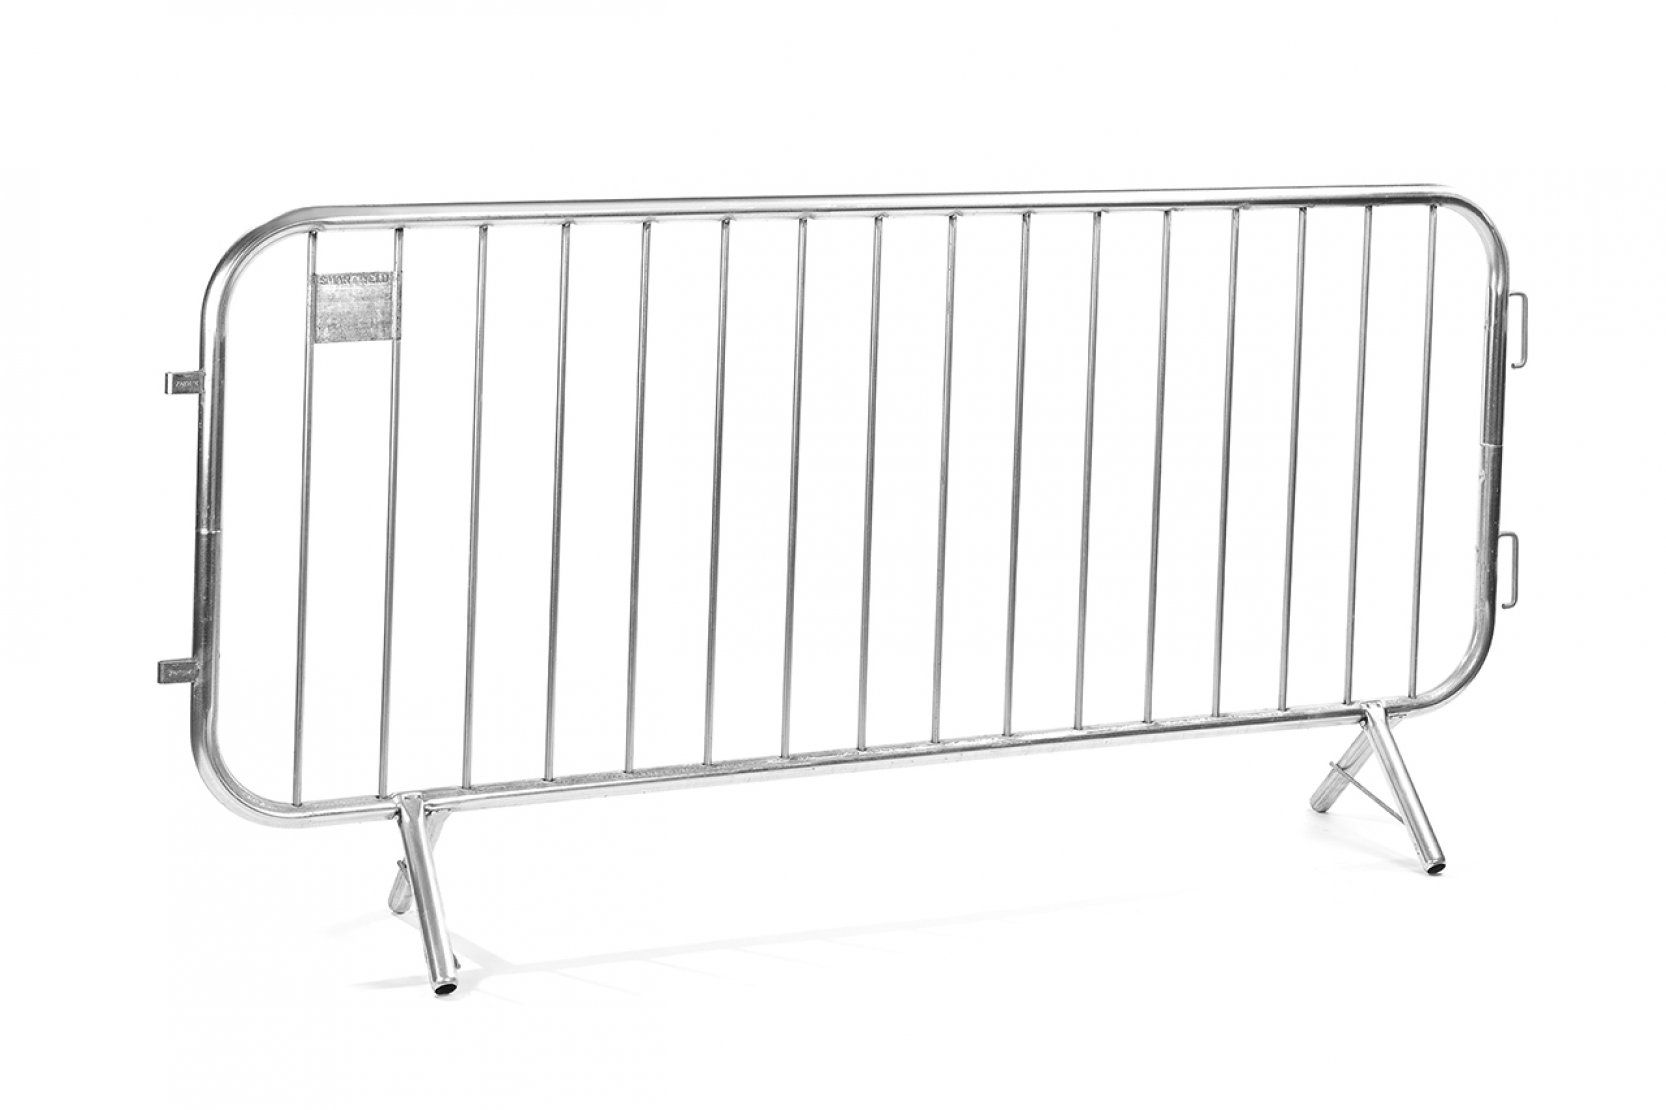 Crowd Control Barrier Fencing For Hire 2 3m Fencing